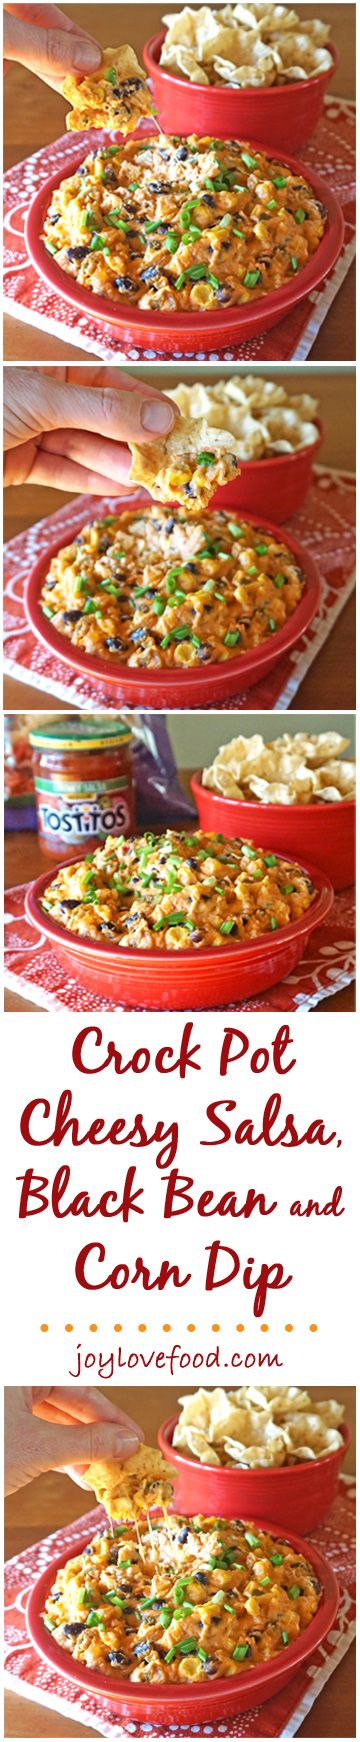 Crock Pot Cheesy Salsa, Black Bean and Corn Dip - a delicious, cheesy dip that is full of flavor and can be made and kept warm in the slow cooker, perfect for a game day get together. #GameDayGlory #ad